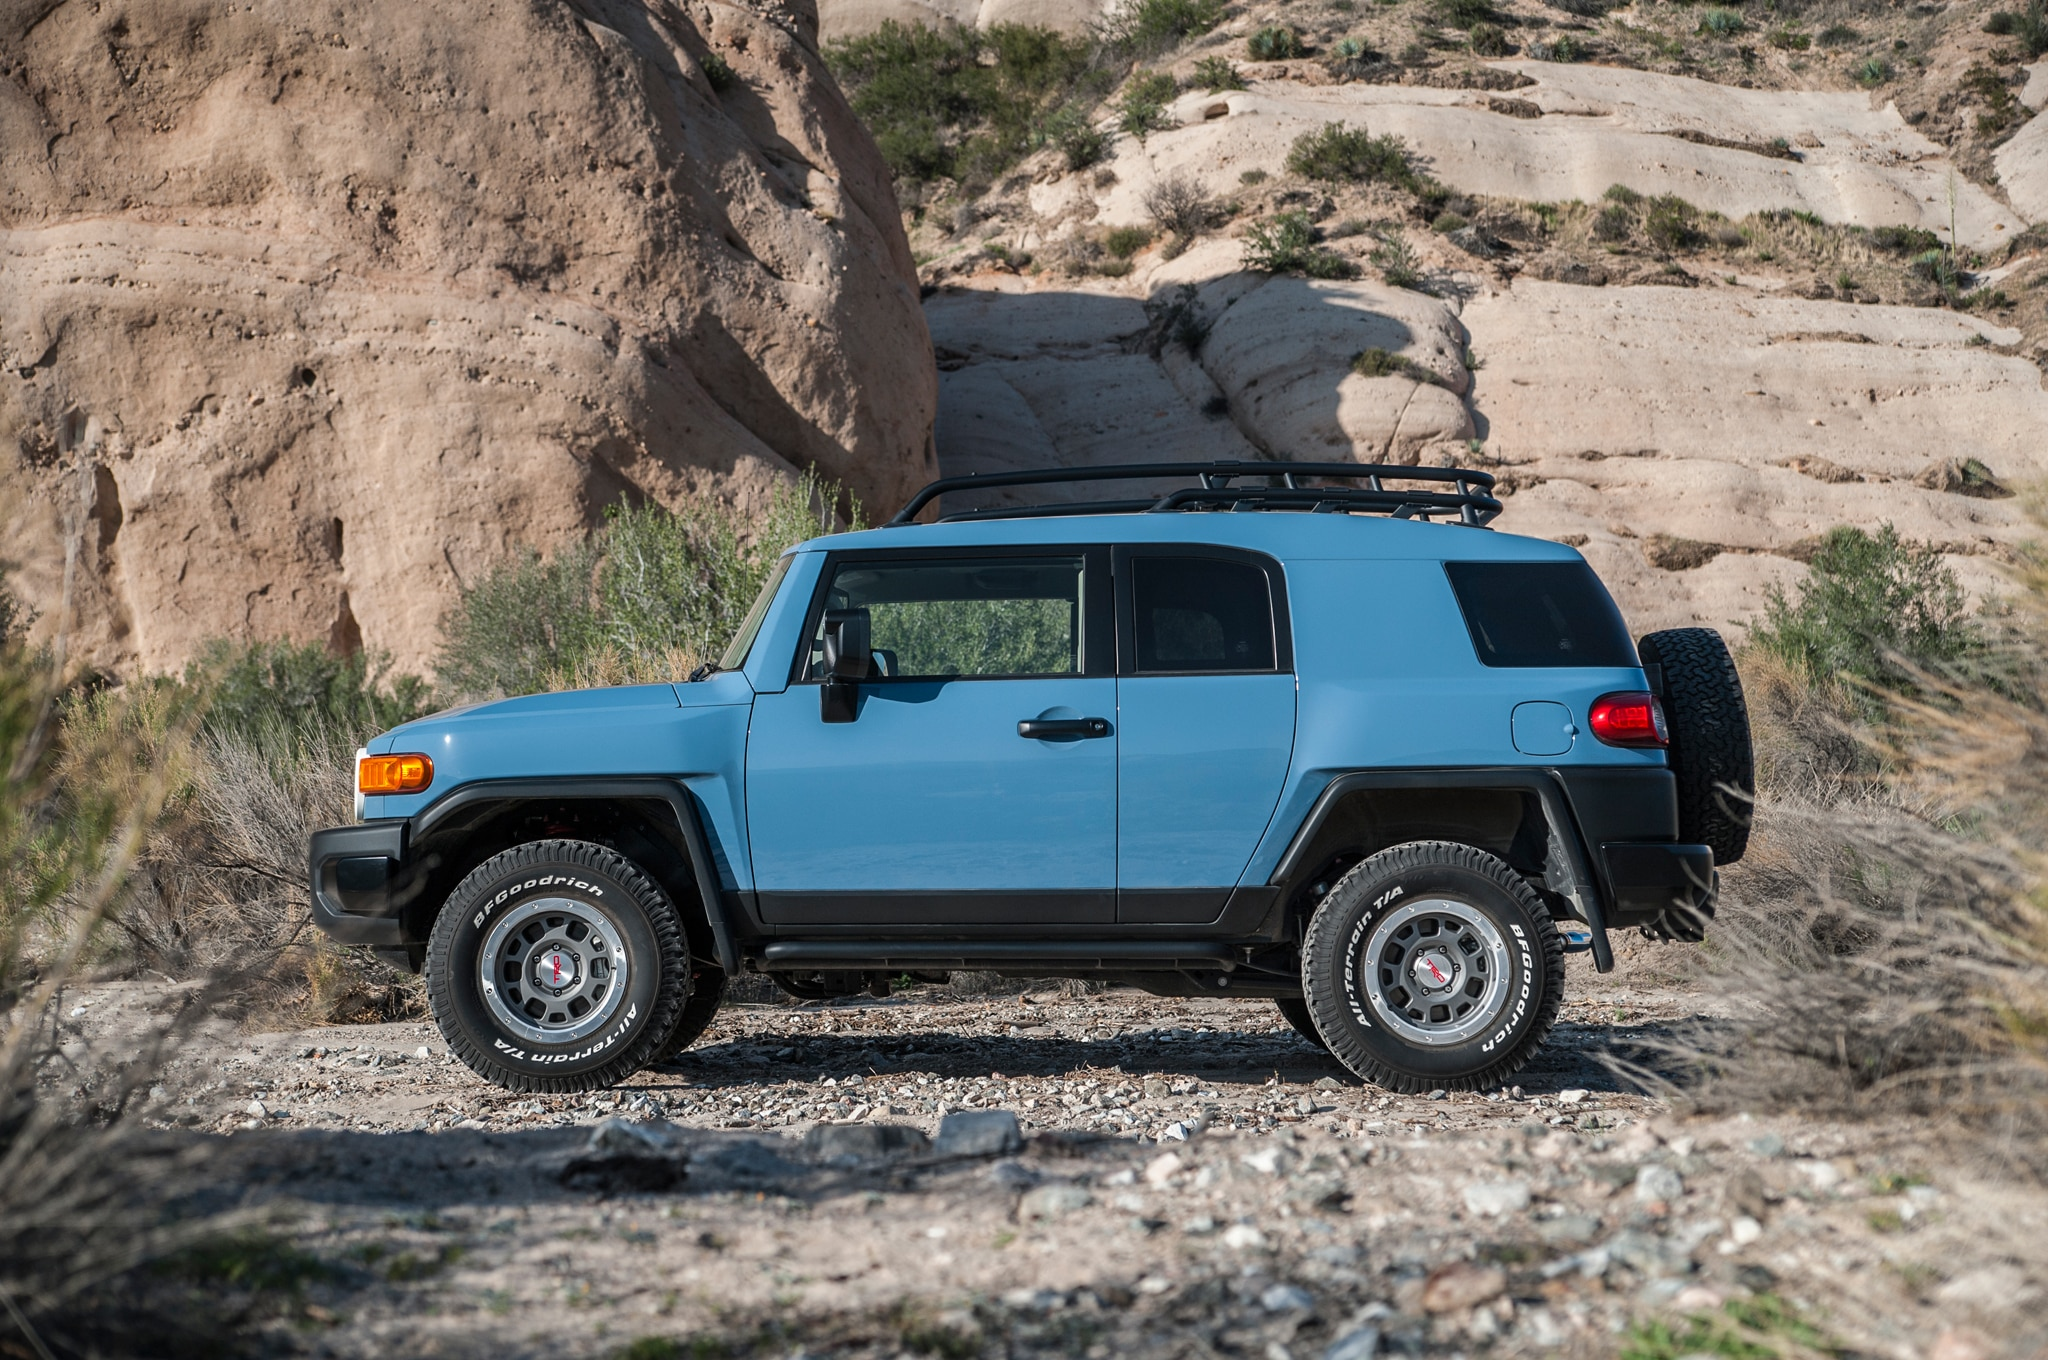 2014 toyota fj cruiser ultimate edition says goodbye. Black Bedroom Furniture Sets. Home Design Ideas